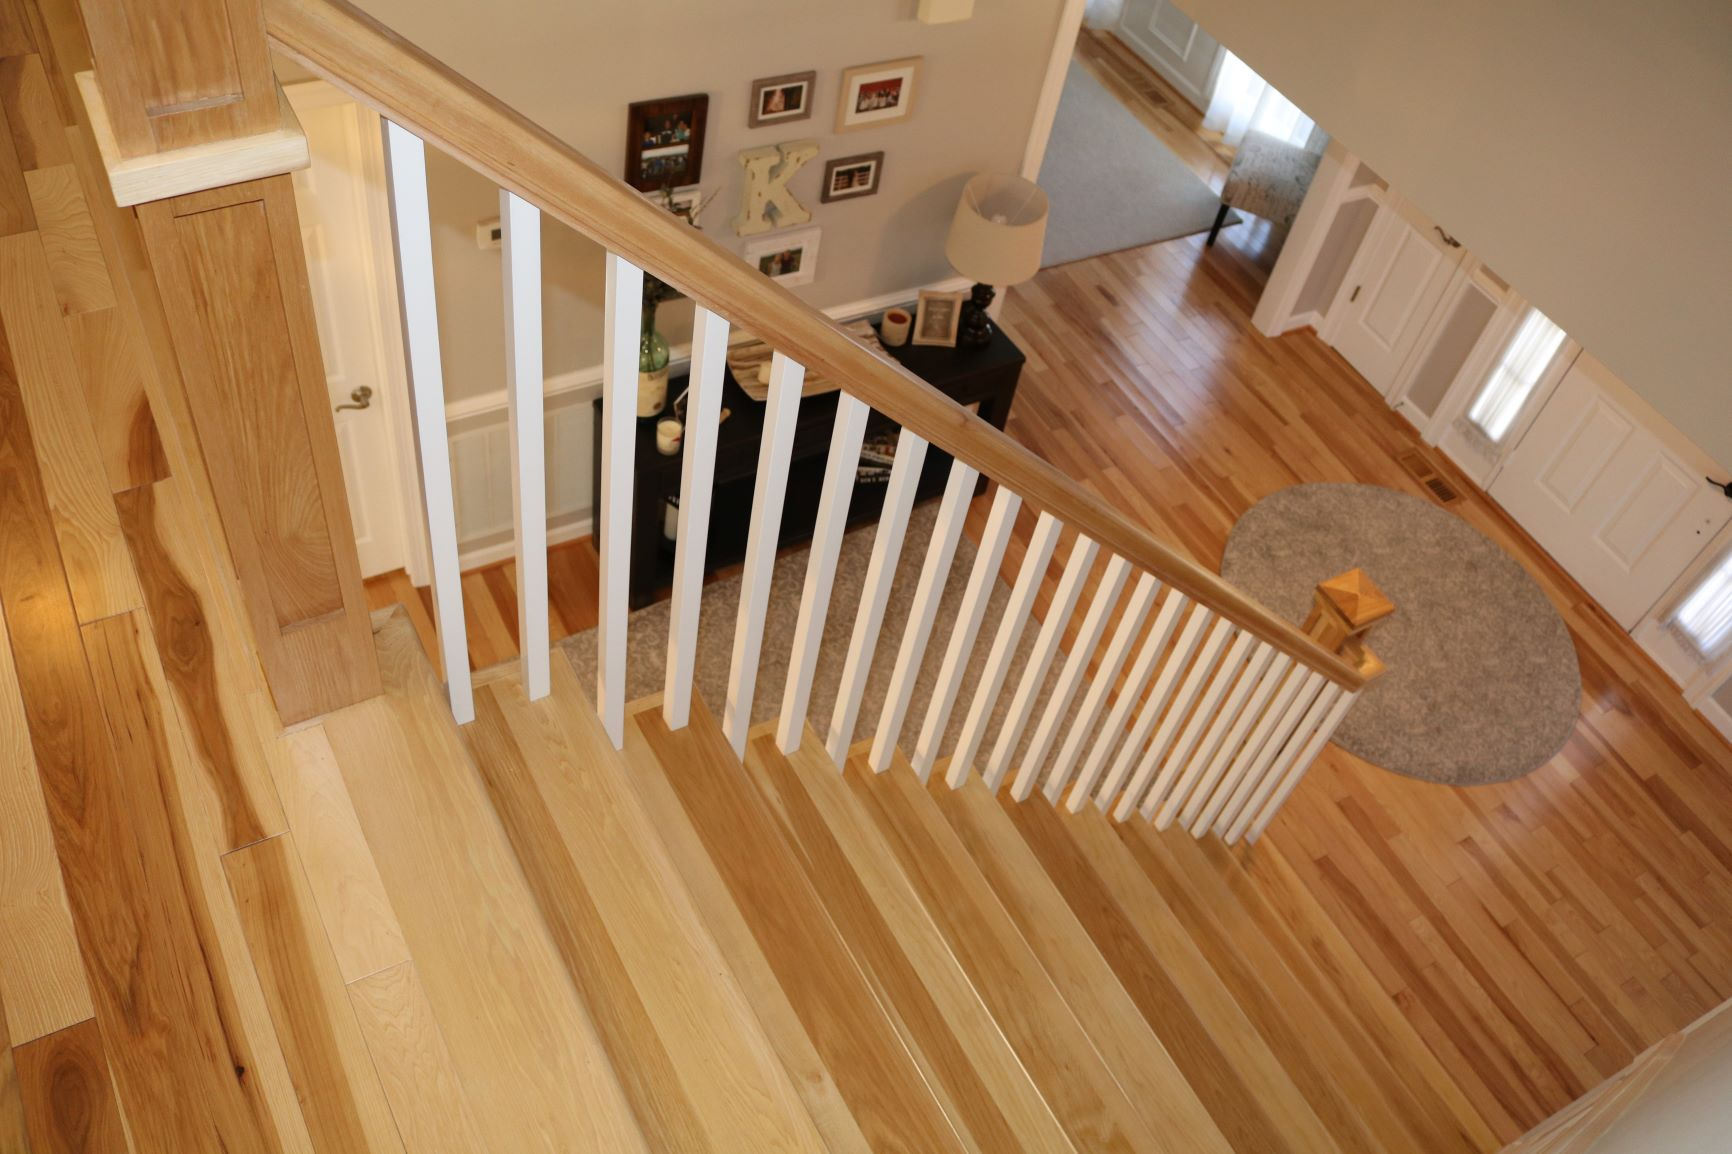 HickoryStairs-Full Remodel-ArlingtonVA-7